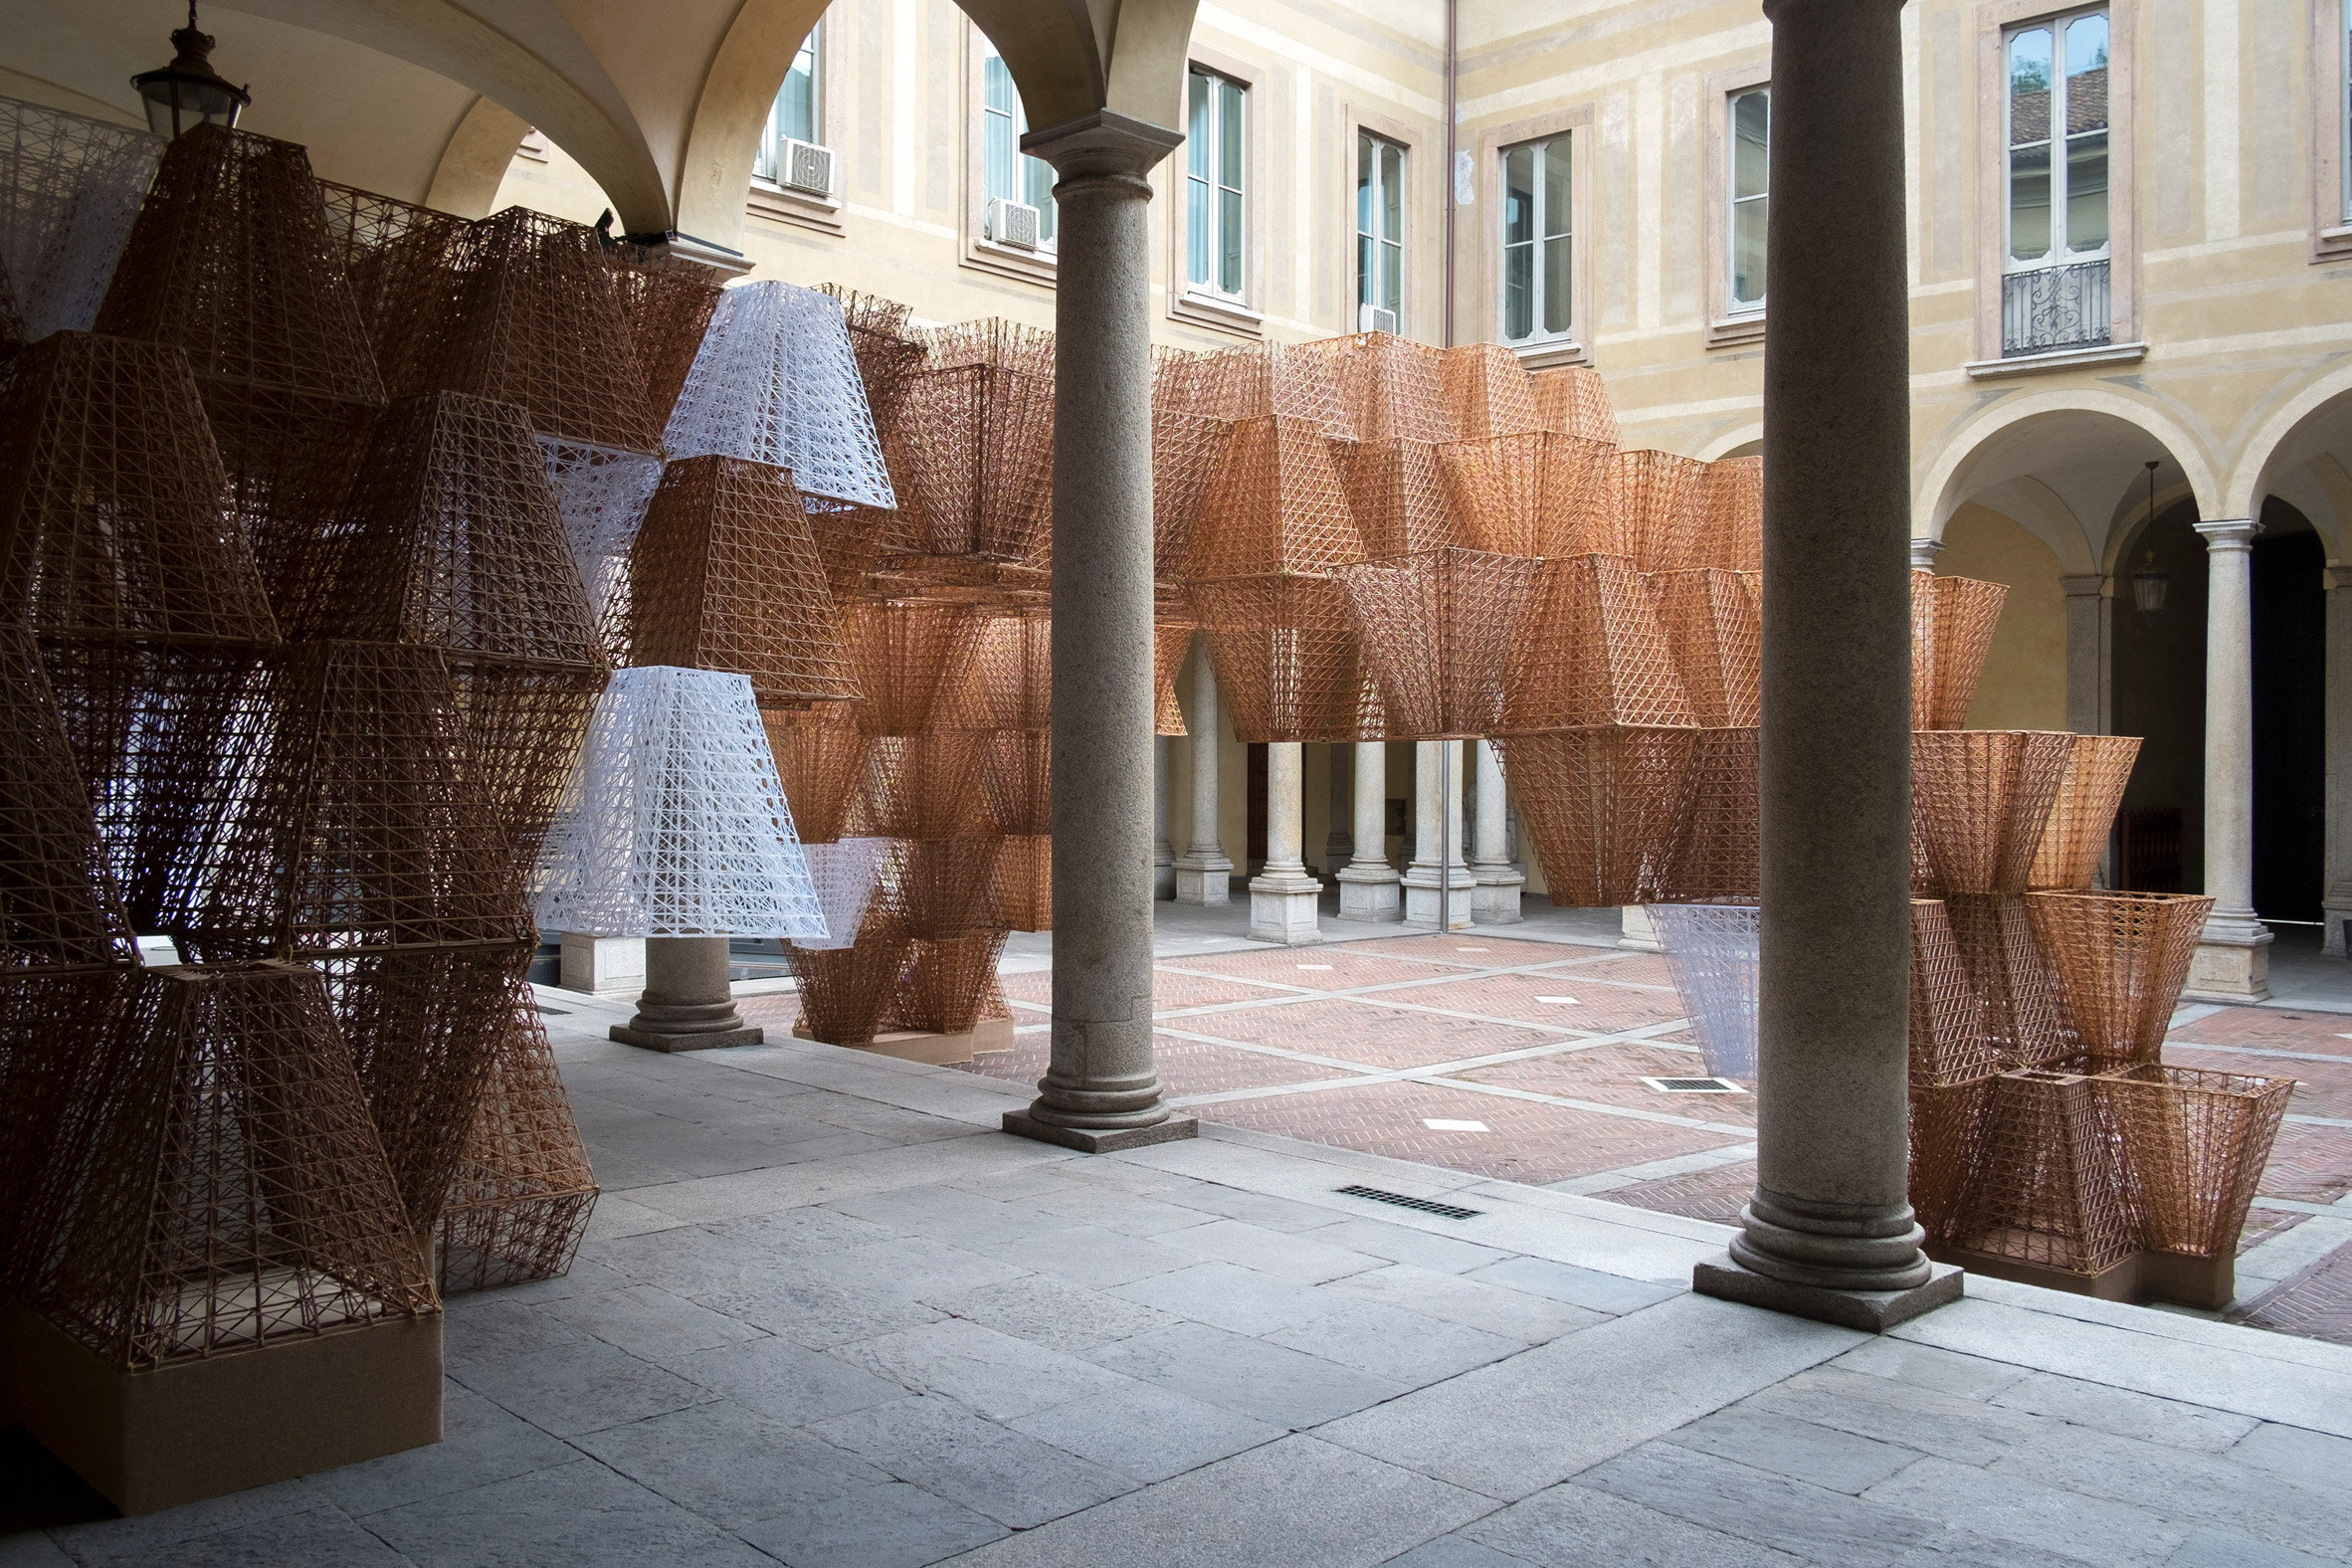 5 Top Installations Milan Design Week 2019 |Eclectic Trends